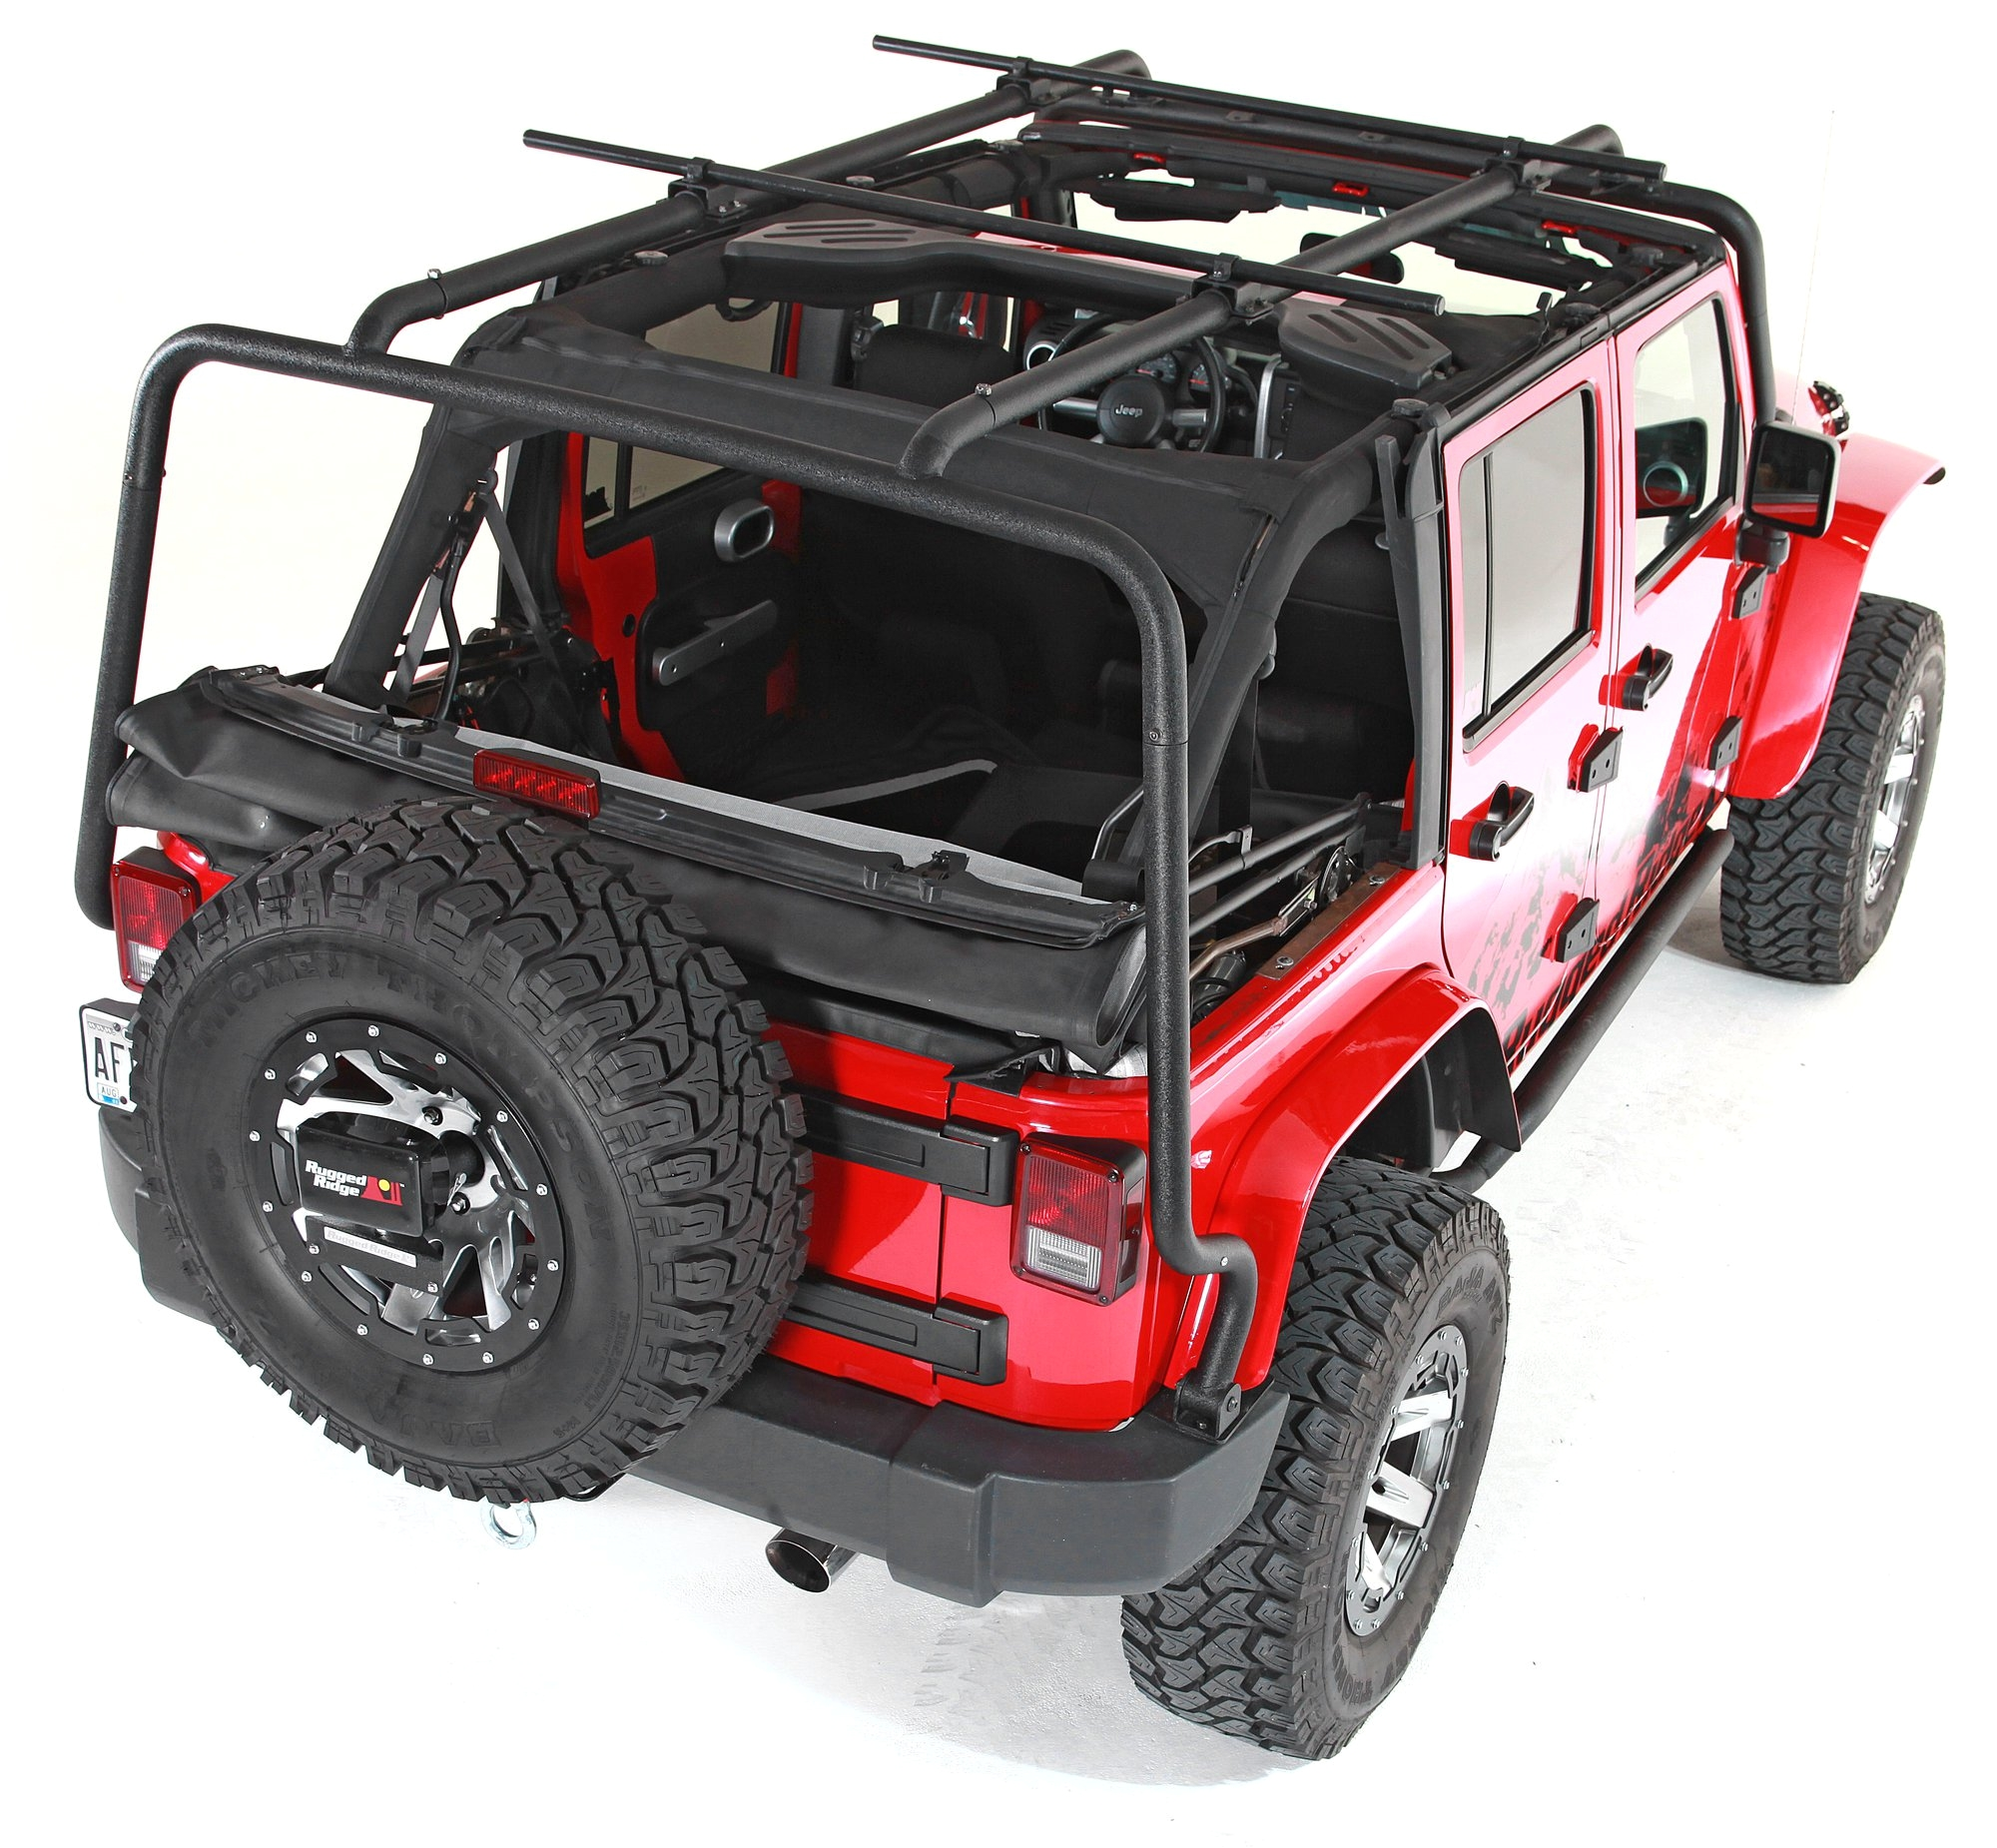 Best Jeep Jku Roof Rack Rugged Ridge 11703 02 Sherpa Rack for 07 18 Jeep Wrangler Unlimited